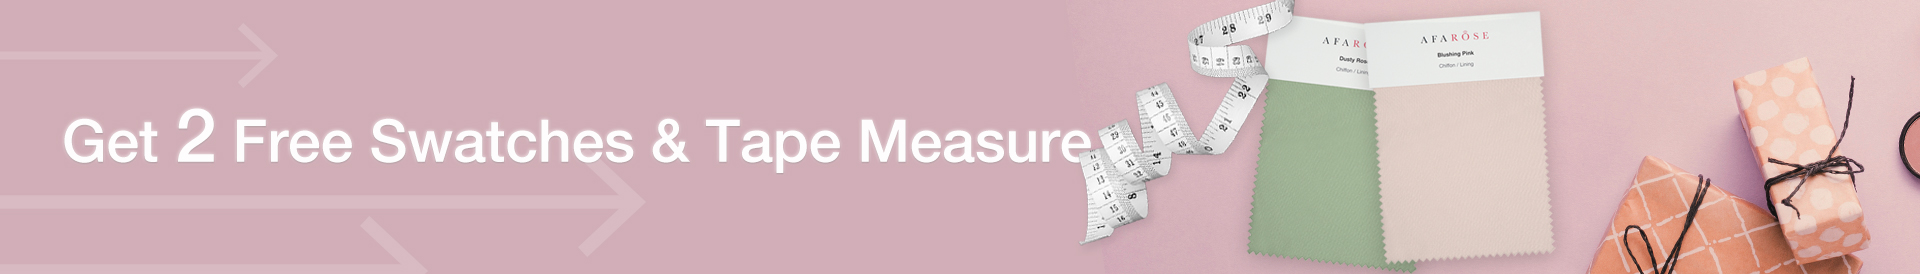 FREE 2 SWATCHES & TAPE MEASURE